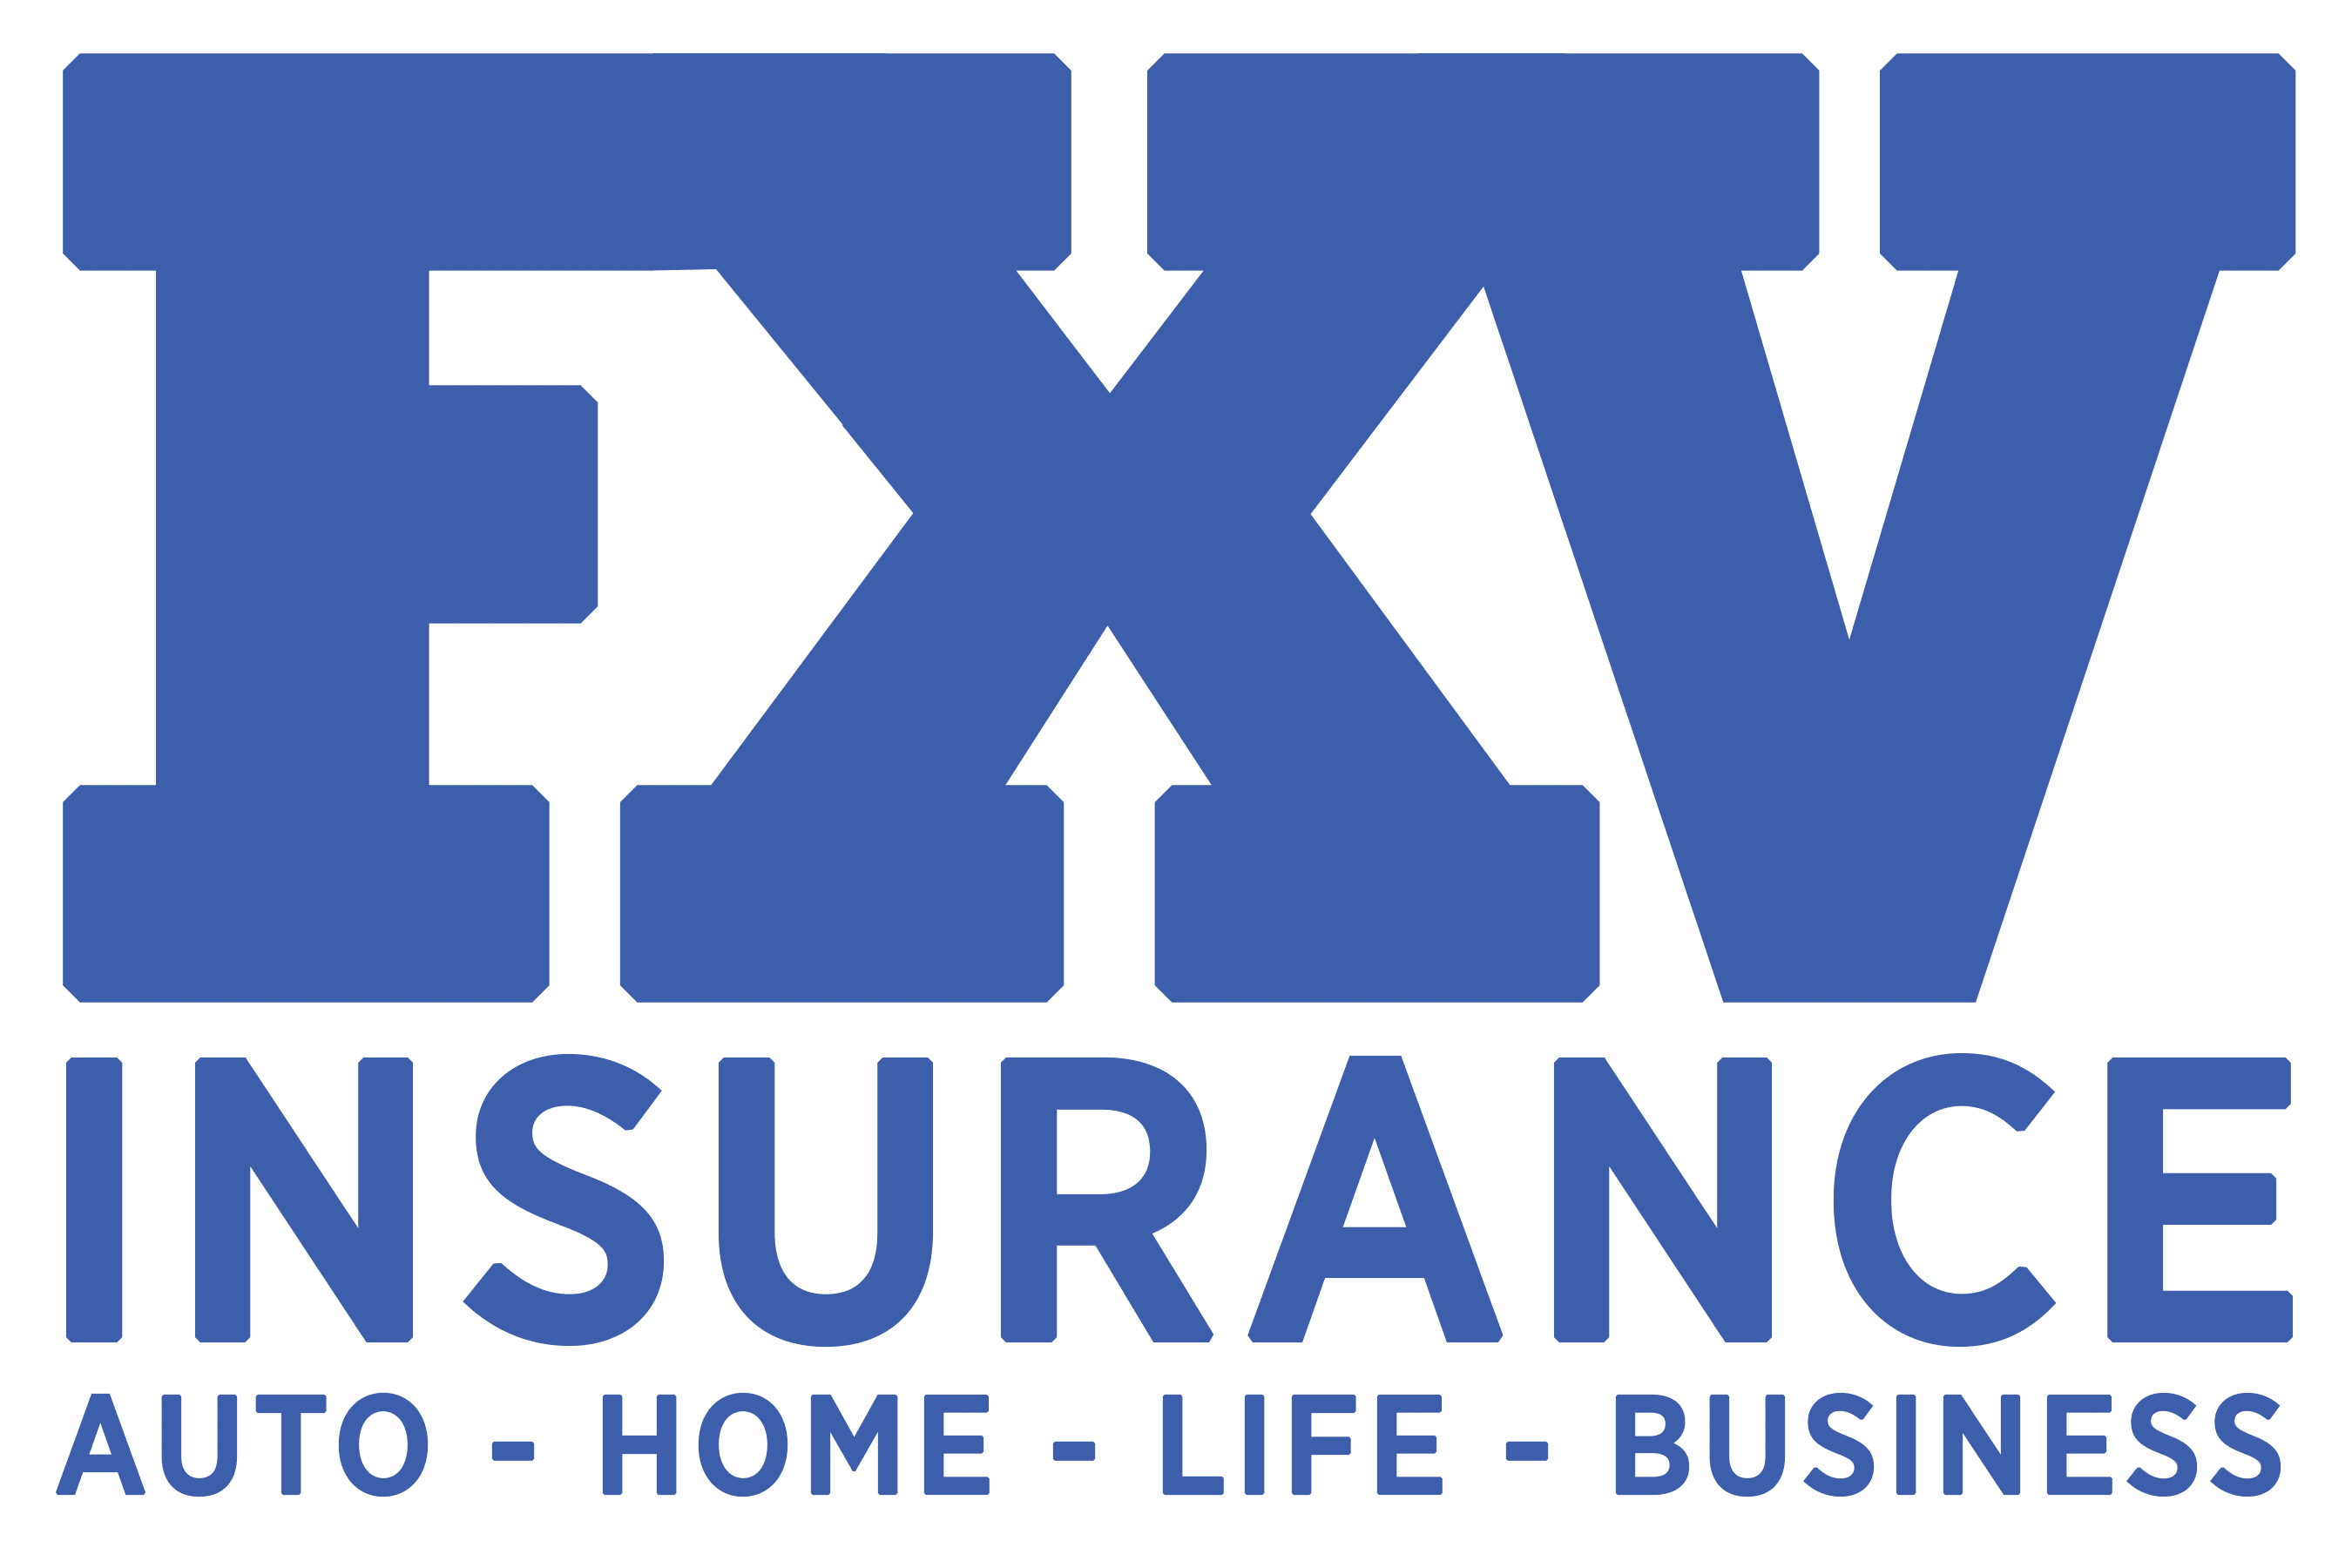 FXV Insurance  | Insurance Coverage to Protect What's Important to You